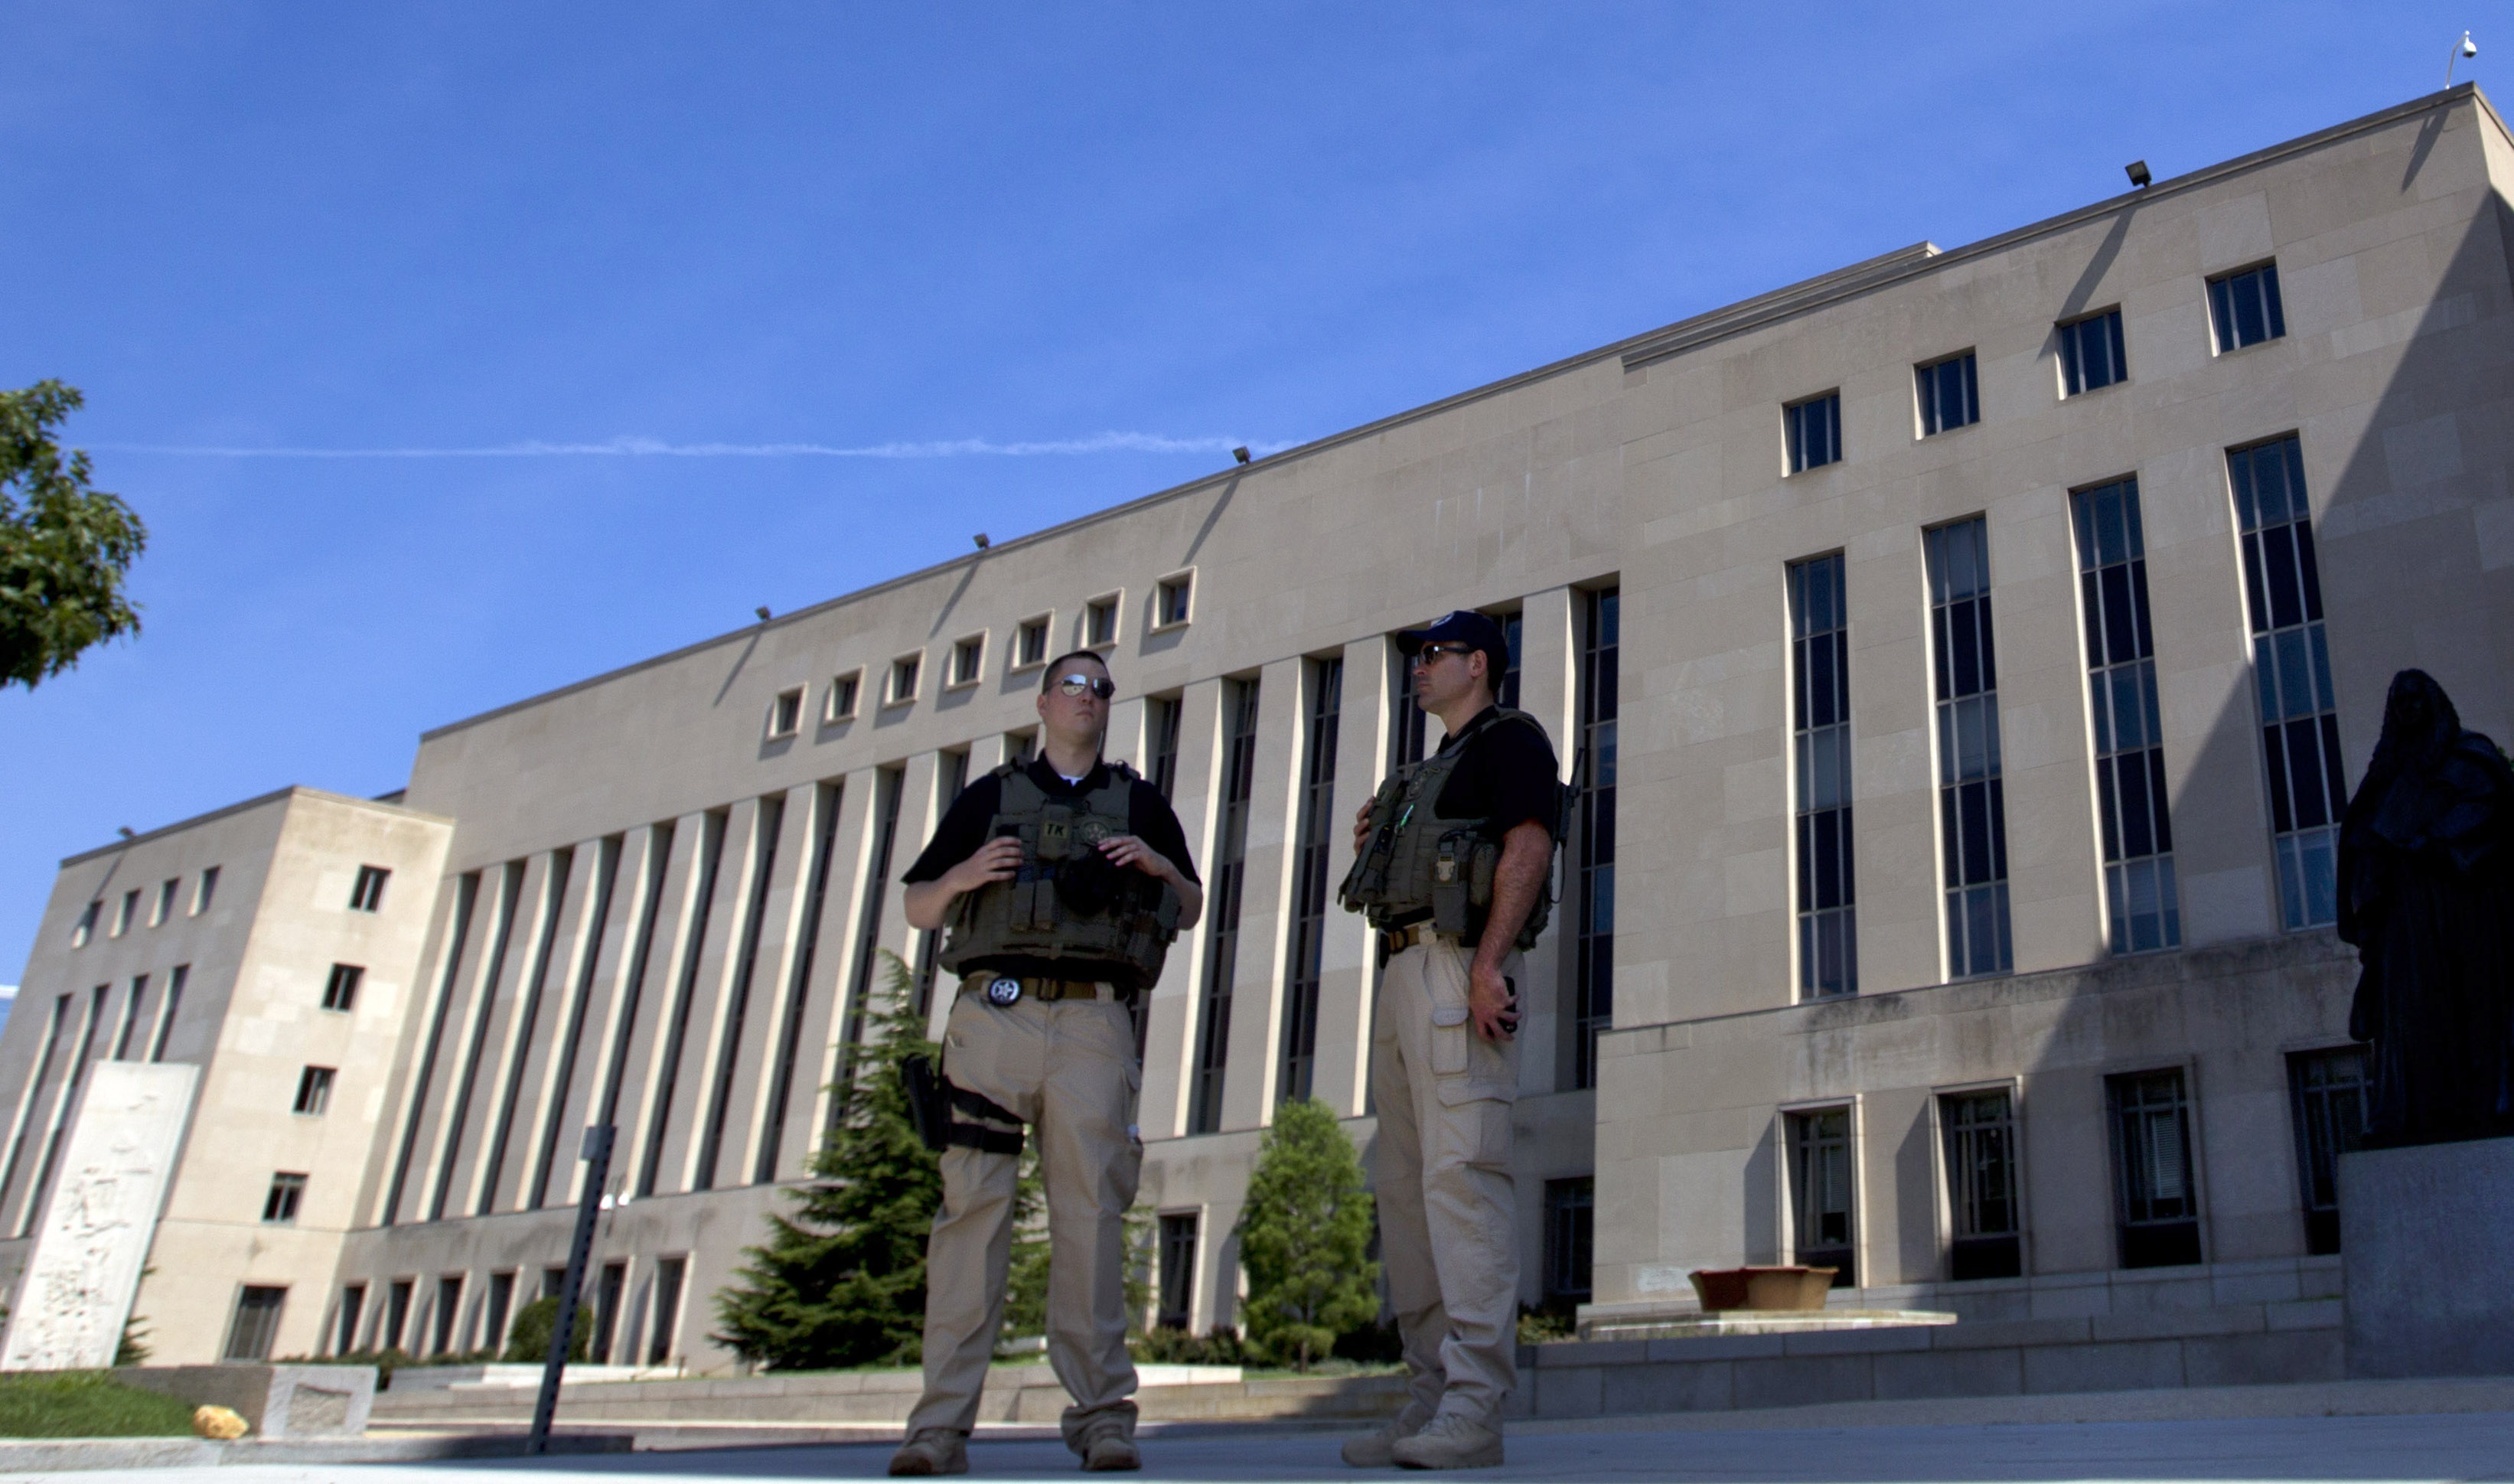 Minnesota Man Faces Terror Charge for Allegedly Joining ISIS